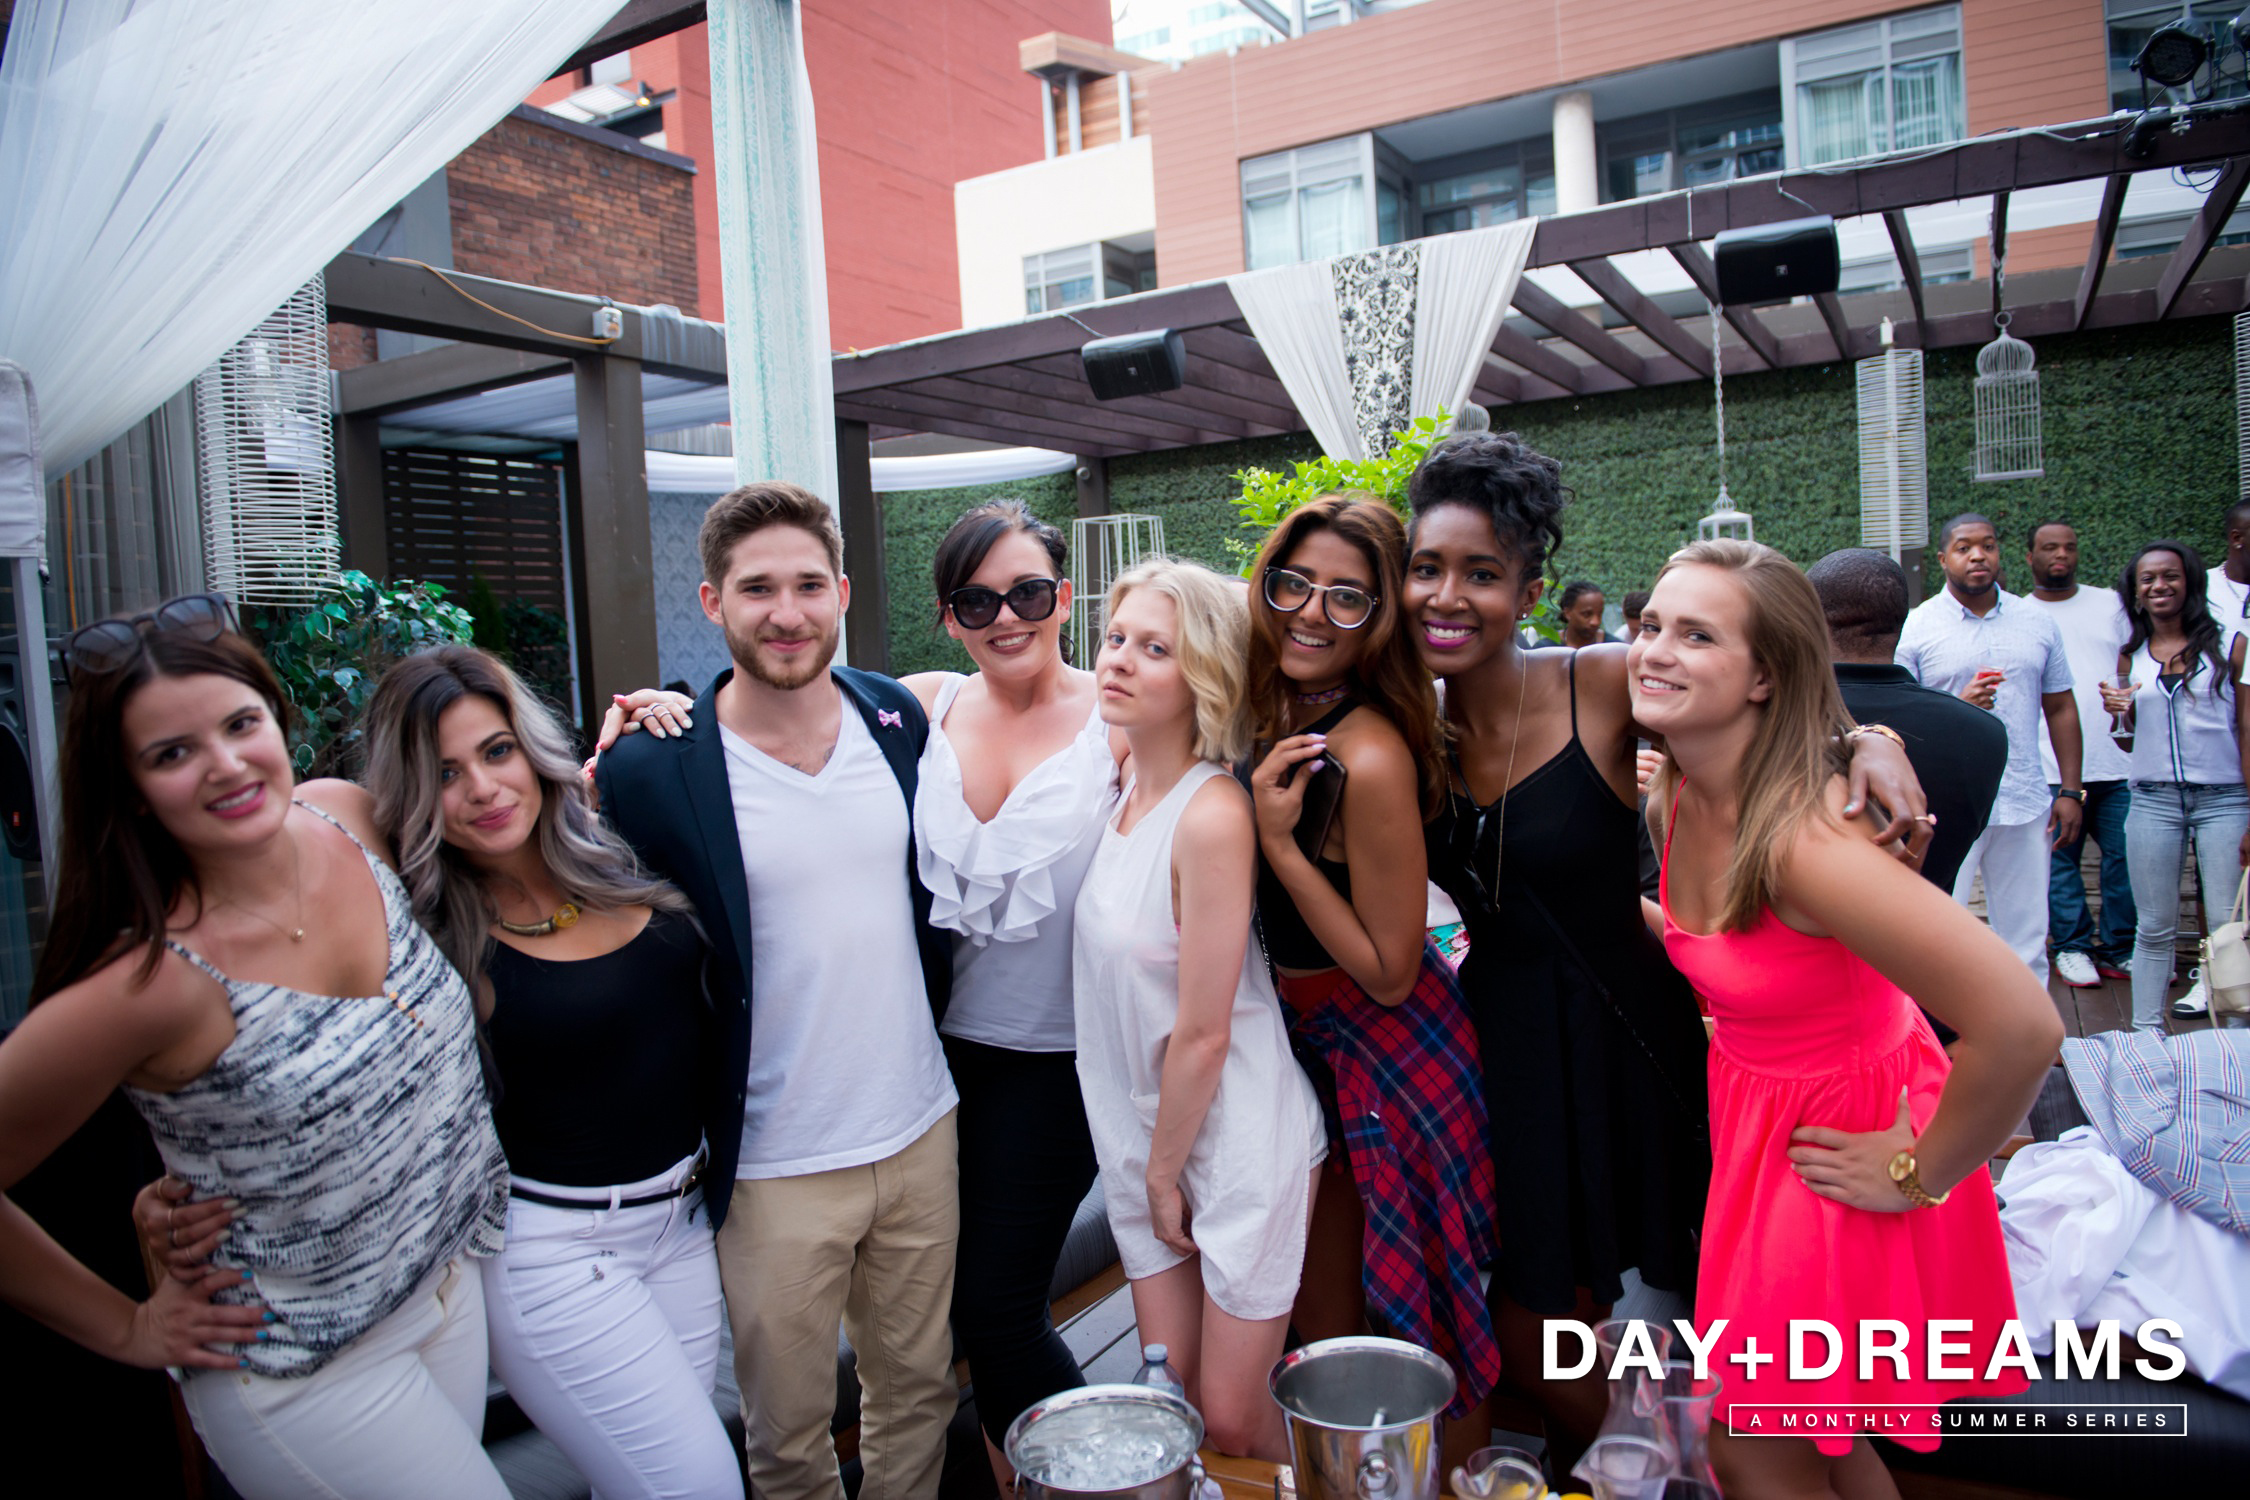 DAY DREAMS July 19 | Maison Mercer Rooftop Terrace